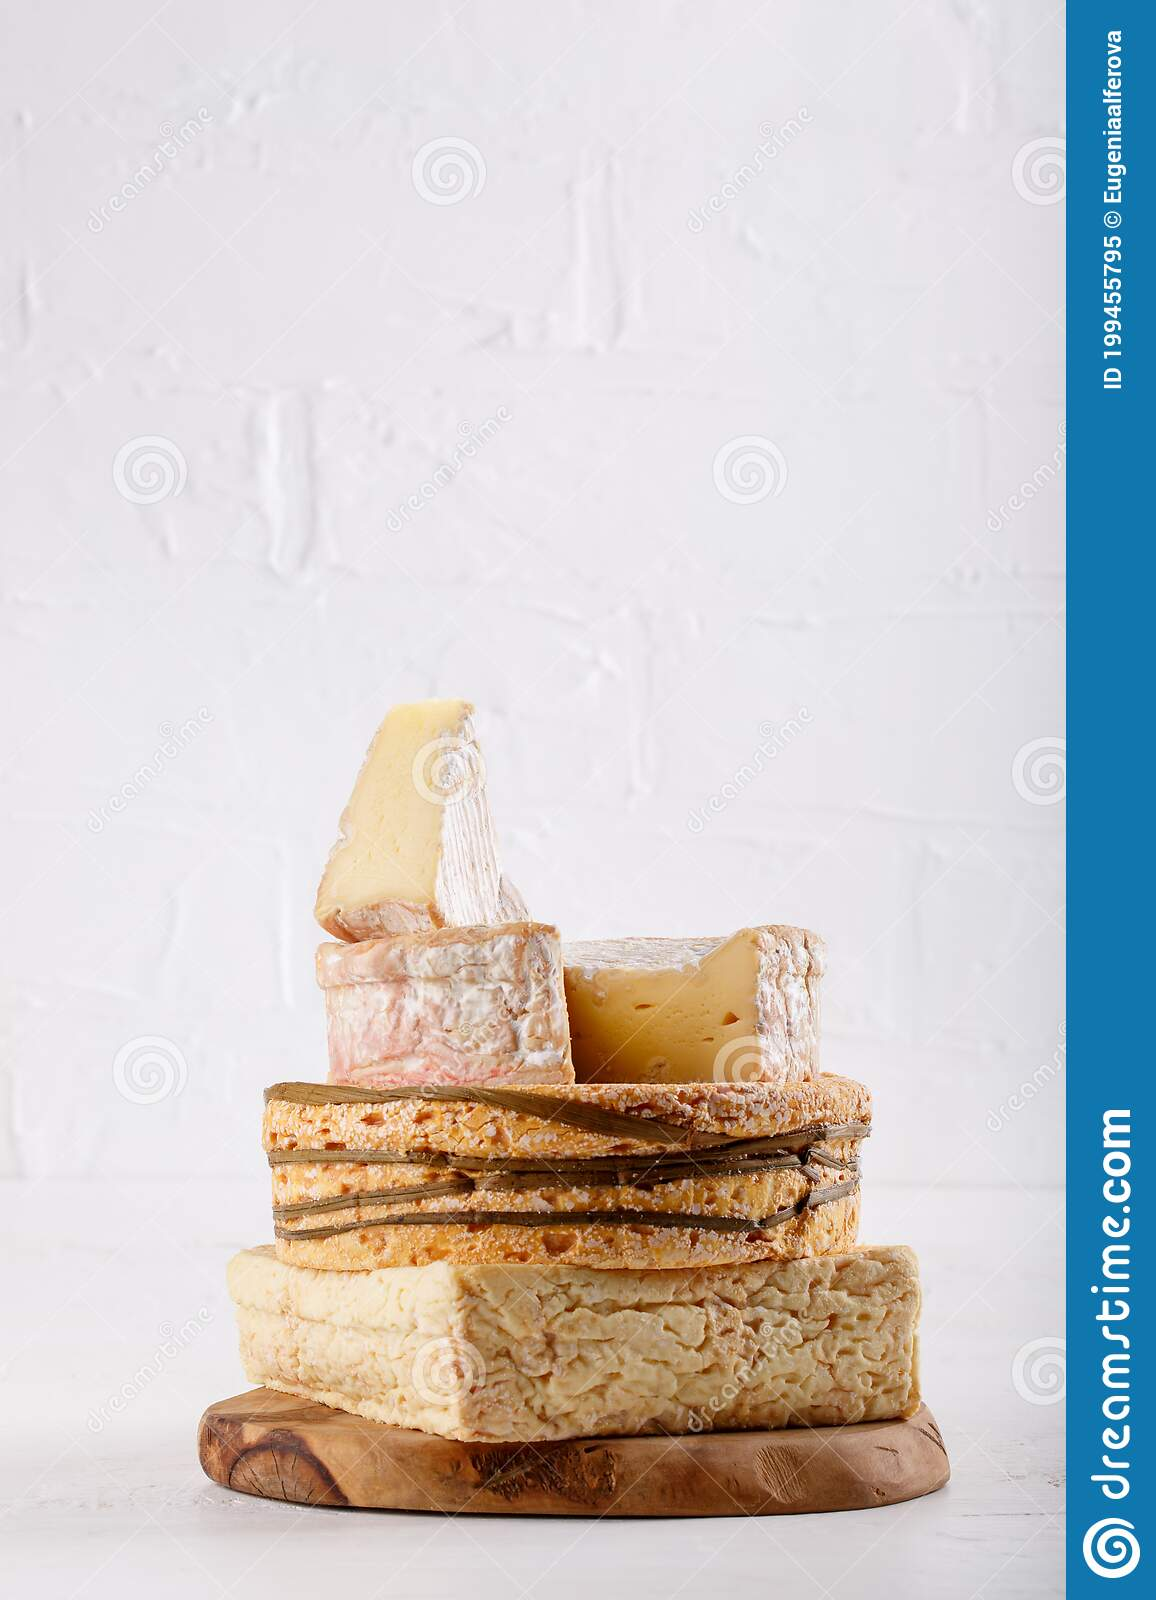 Stack Of Soft French Cow S Milk Cheese On A Cutting Board On White Camembert Livarote Pont L Eveque Cheese From Normandy Cop Stock Image Image Of Meal Cuisine 199455795